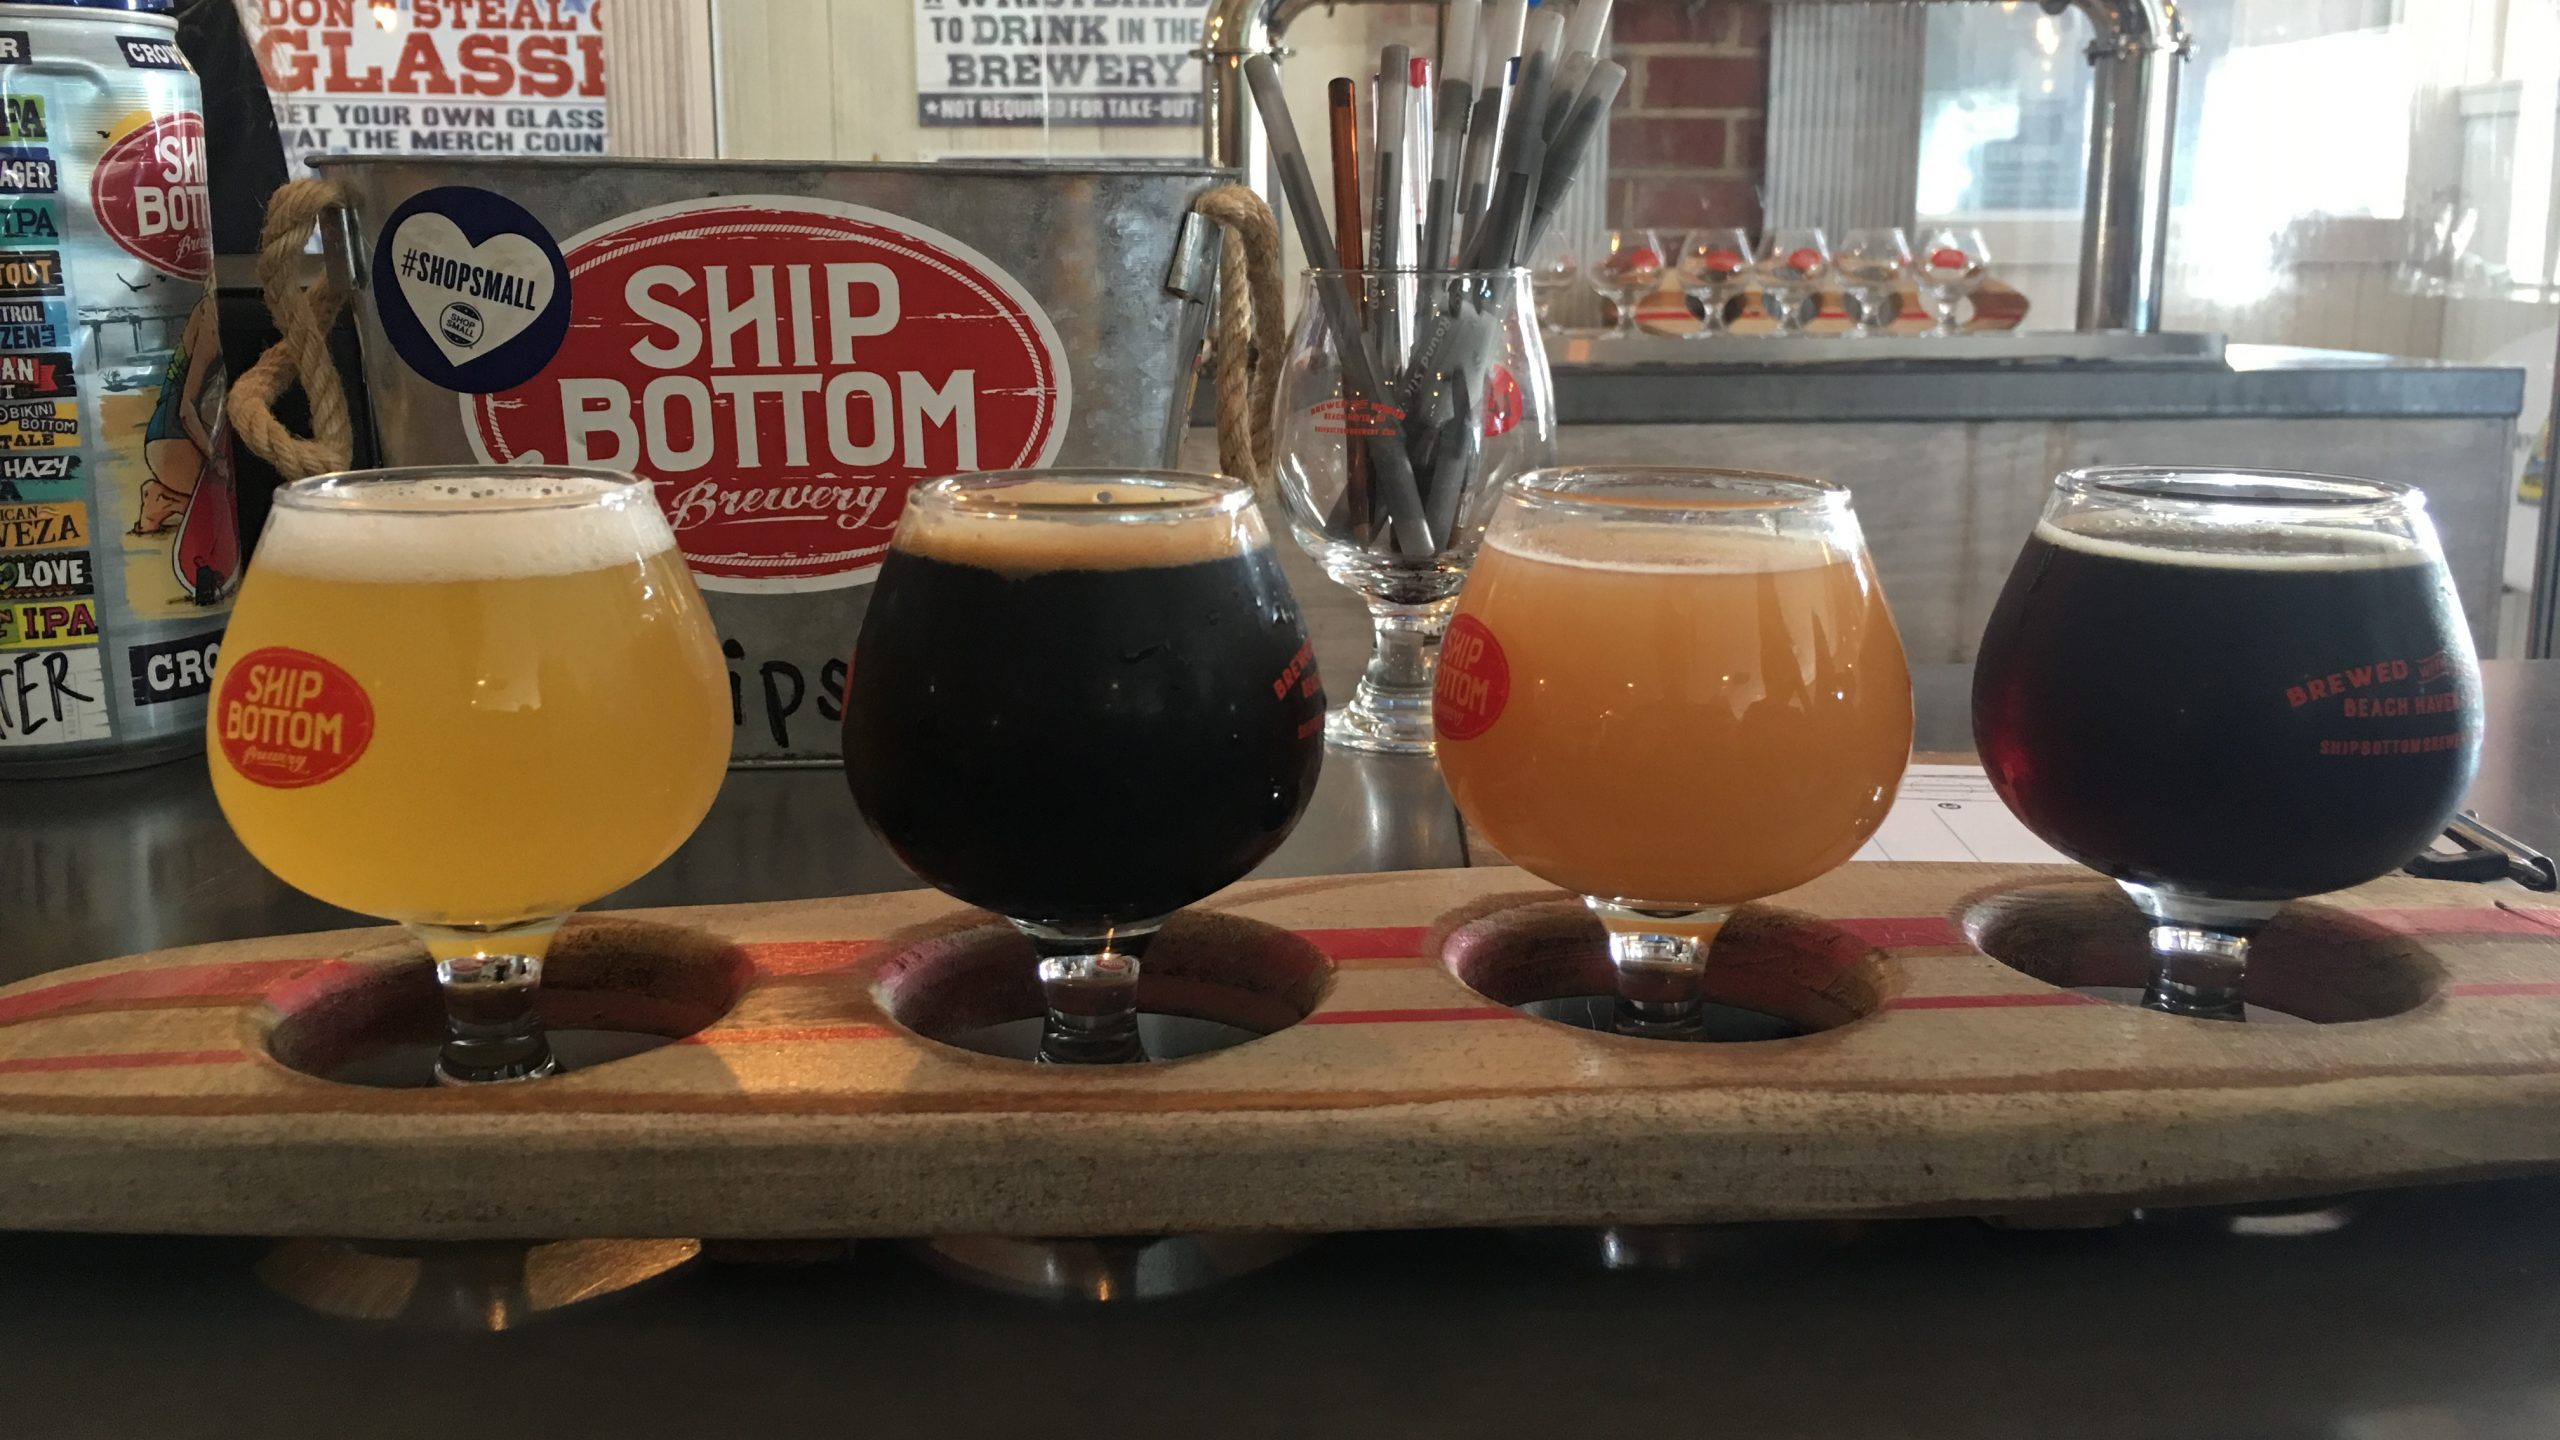 ship bottom brewery